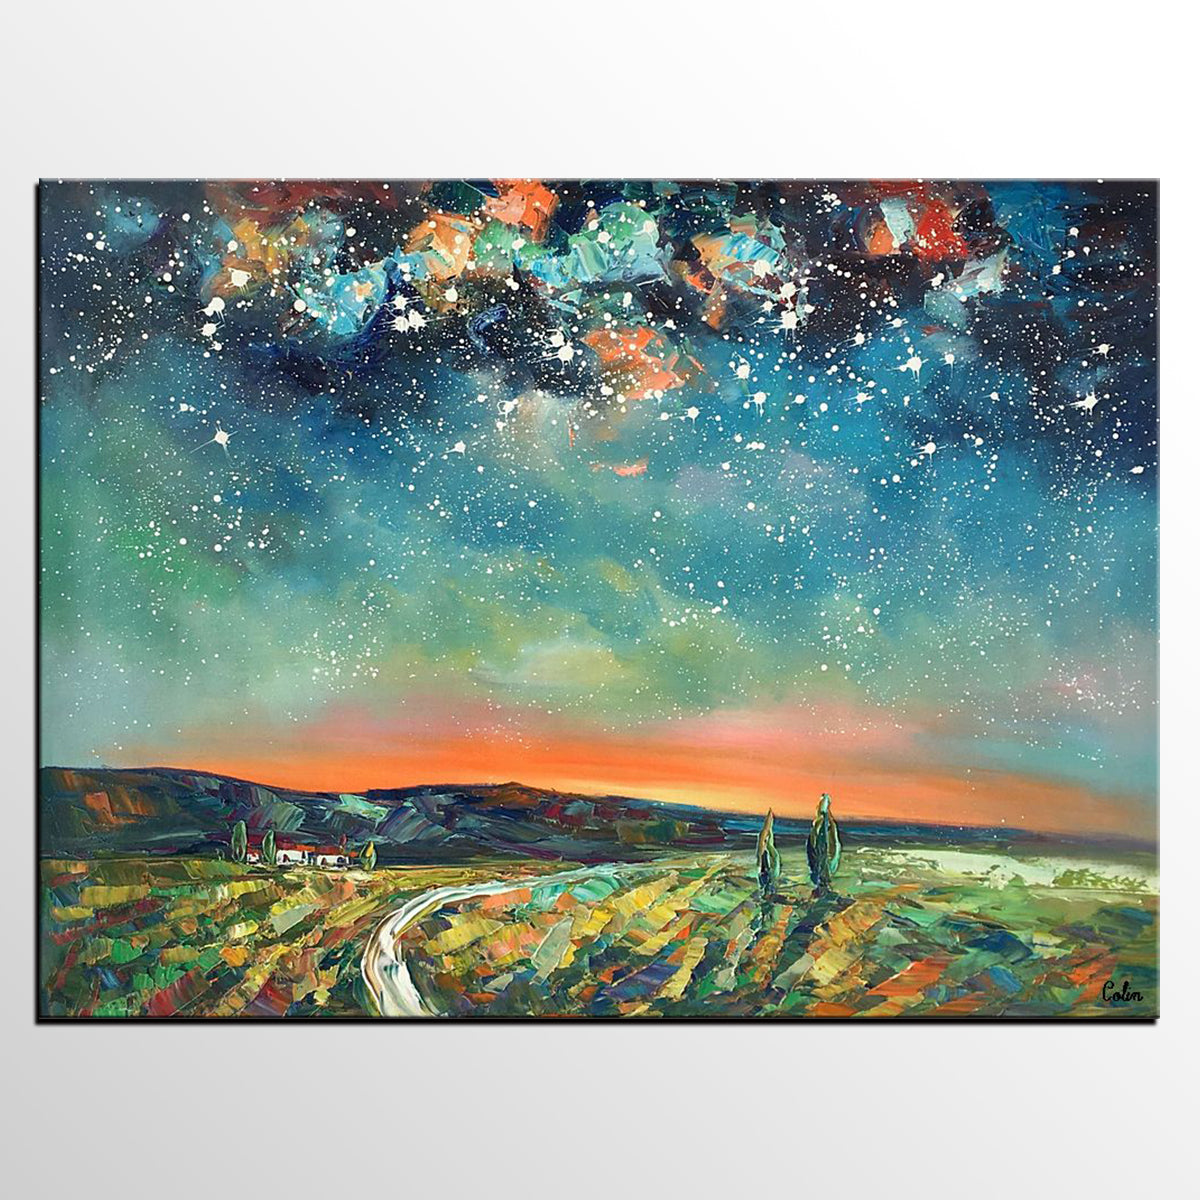 Abstract Landscape Oil Painting, Starry Night Sky Painting, Large Canvas Painting, Heavy Texture Painting